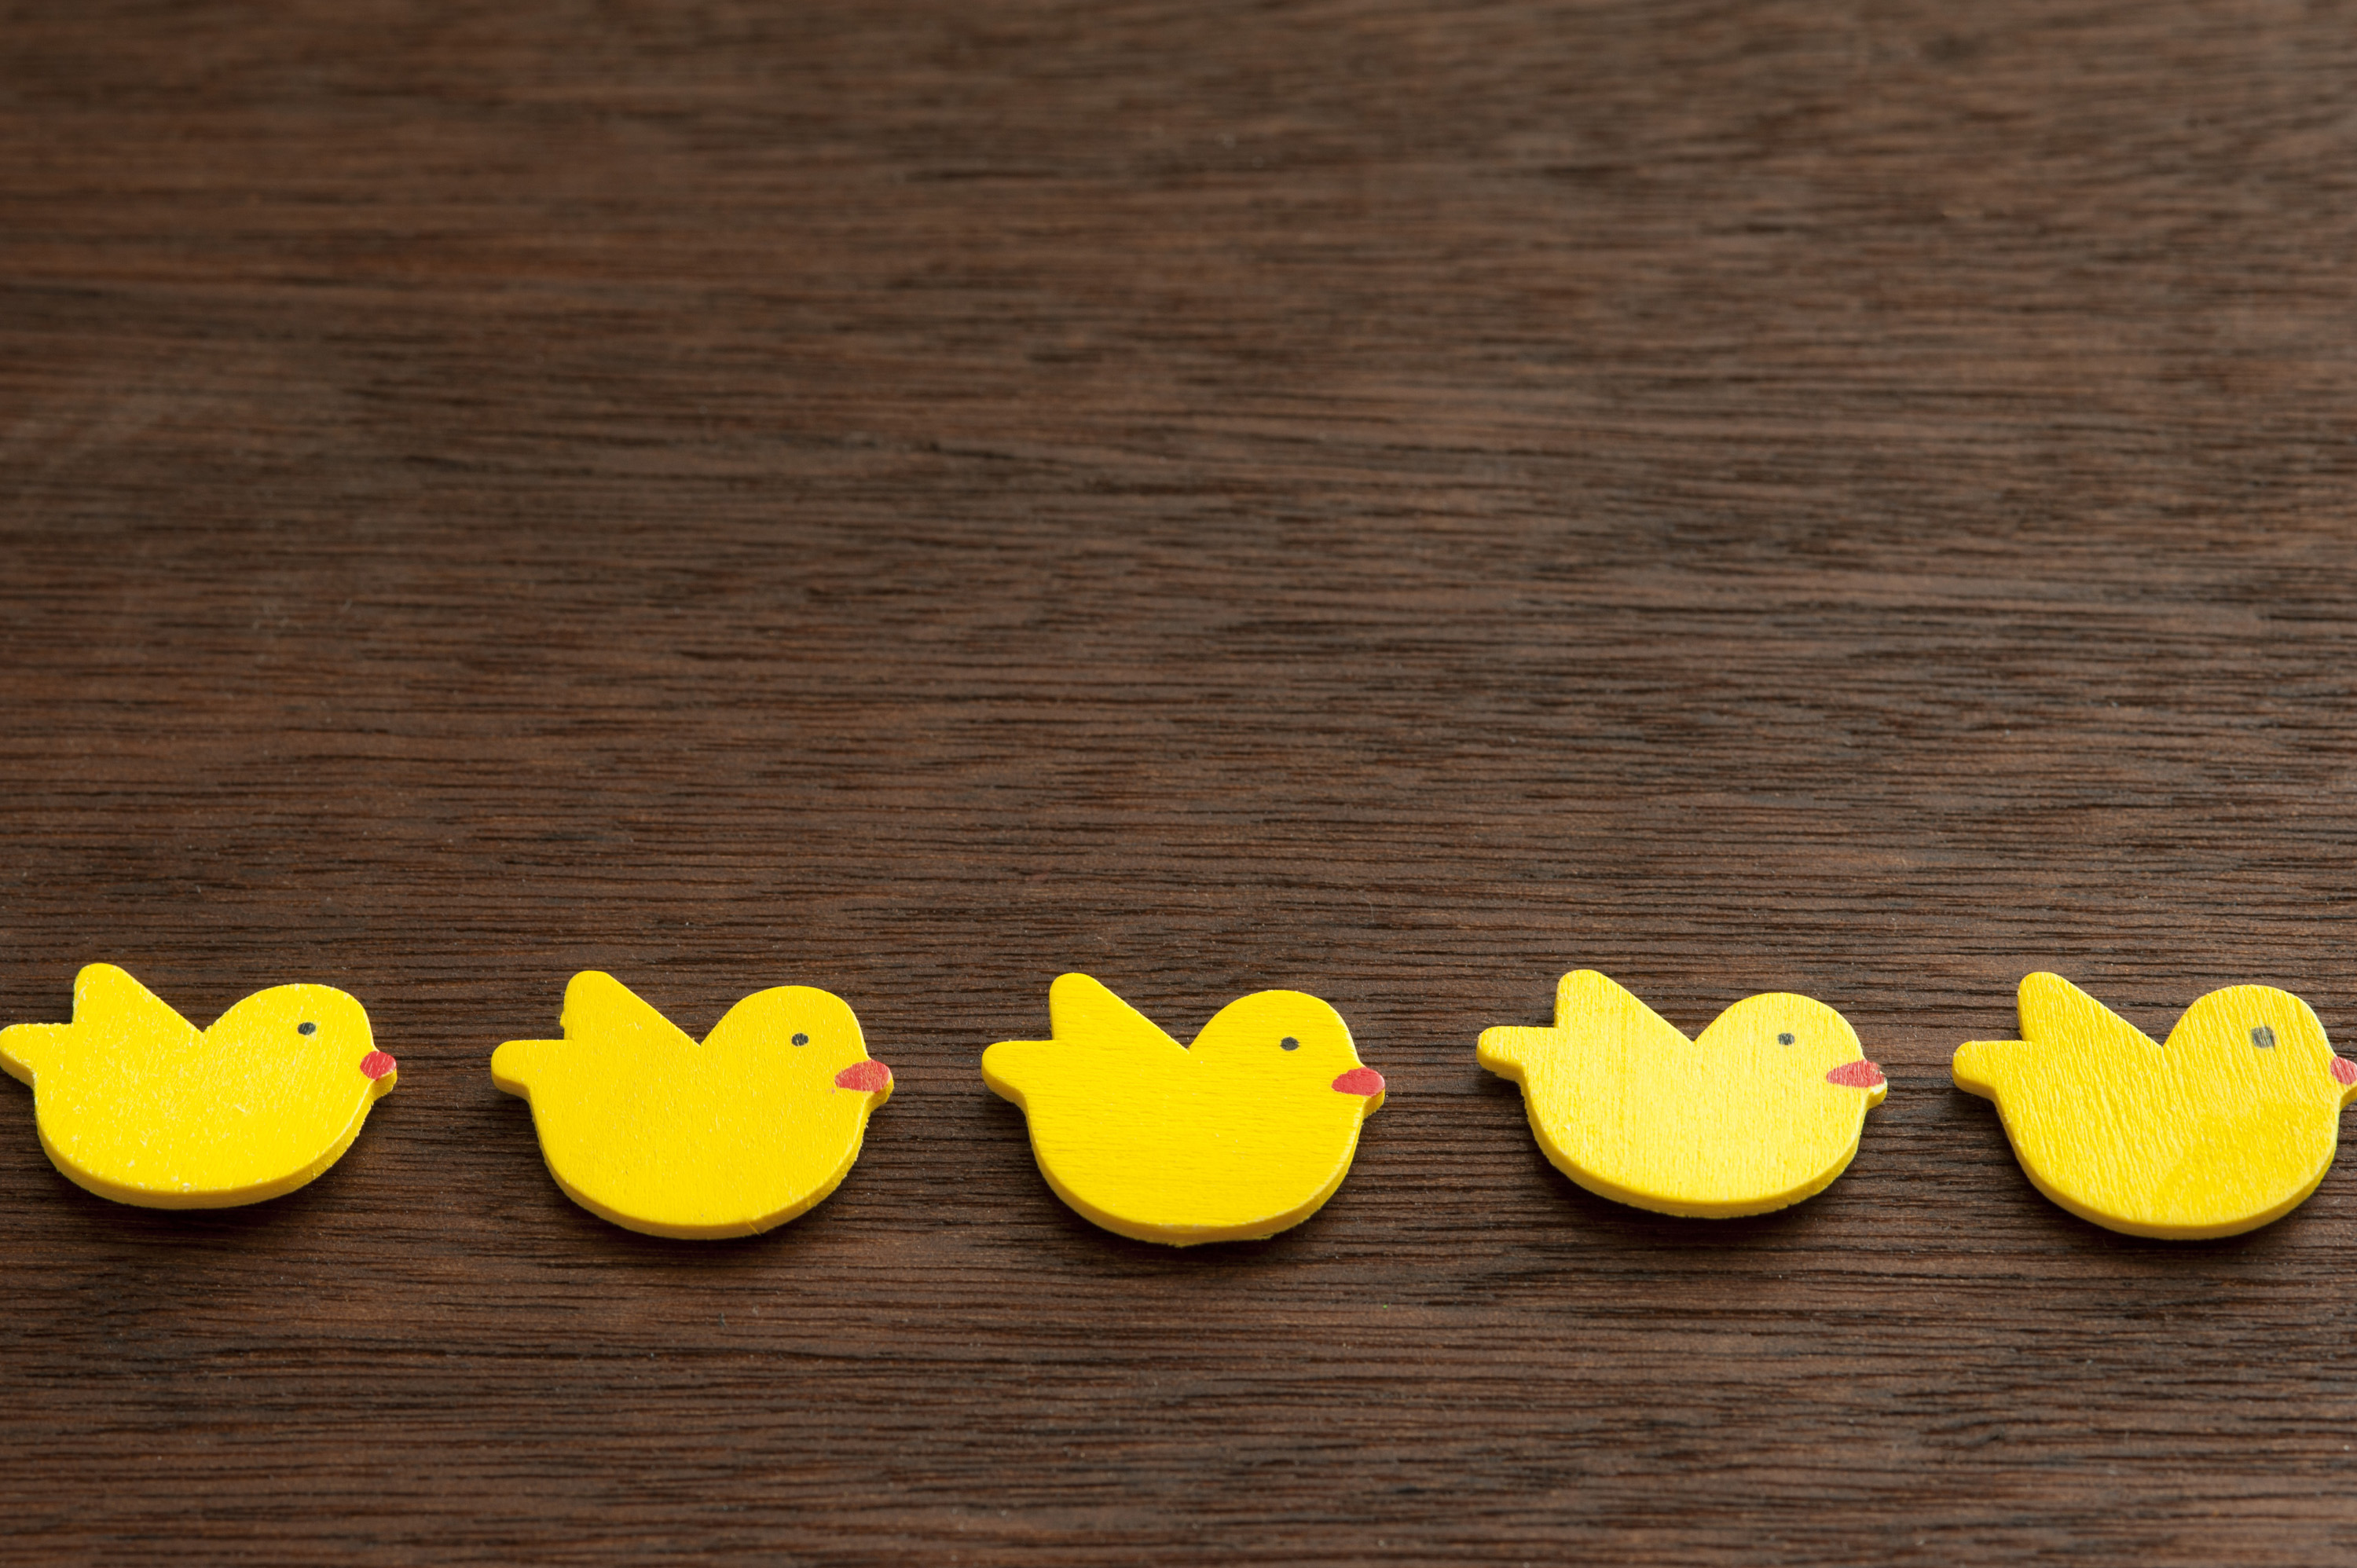 line_of_chickens.jpg - Top view of line of yellow decorative easter chicks on brown wooden surface. Copy space